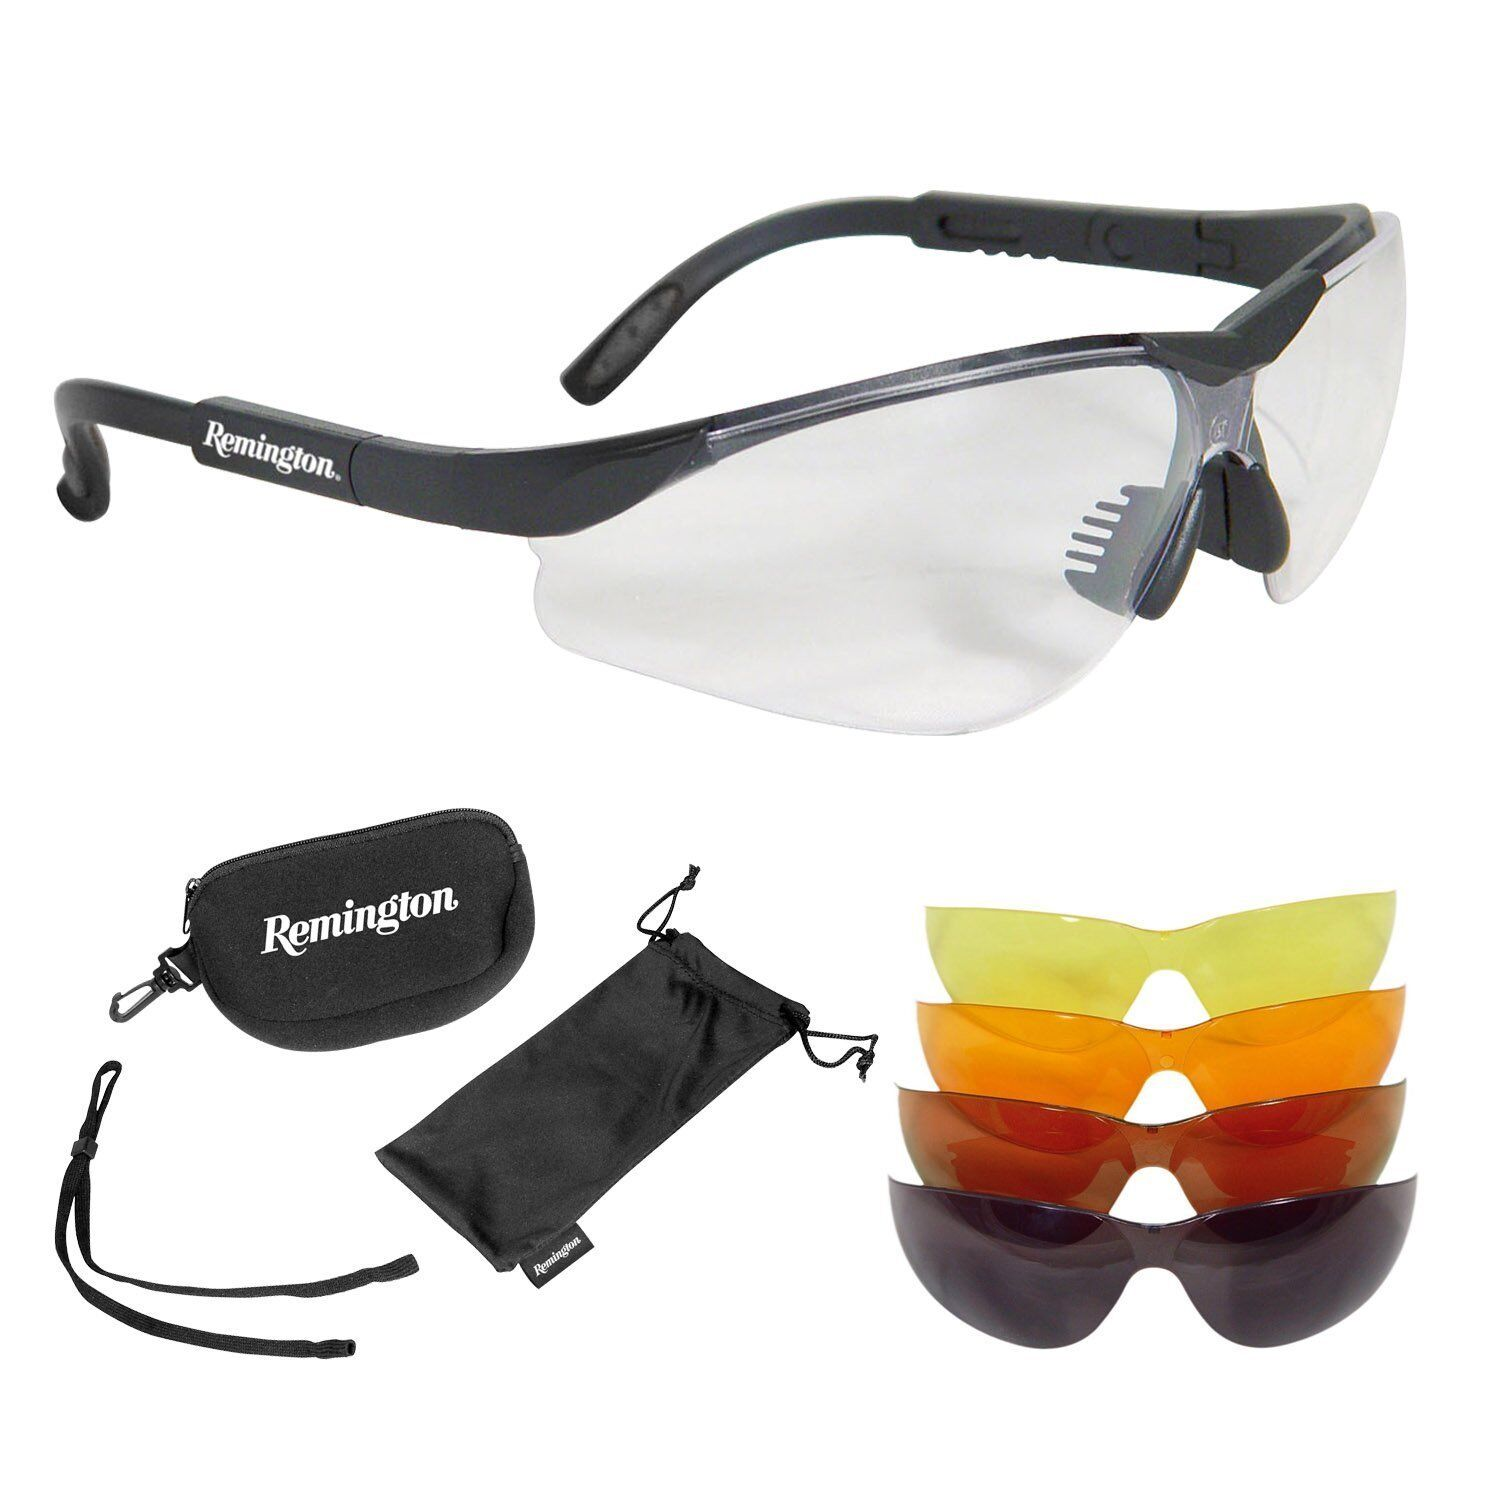 Radians 5 lens Glasses Kit Target Shooting Hunting Outdoors Climbing Skiing